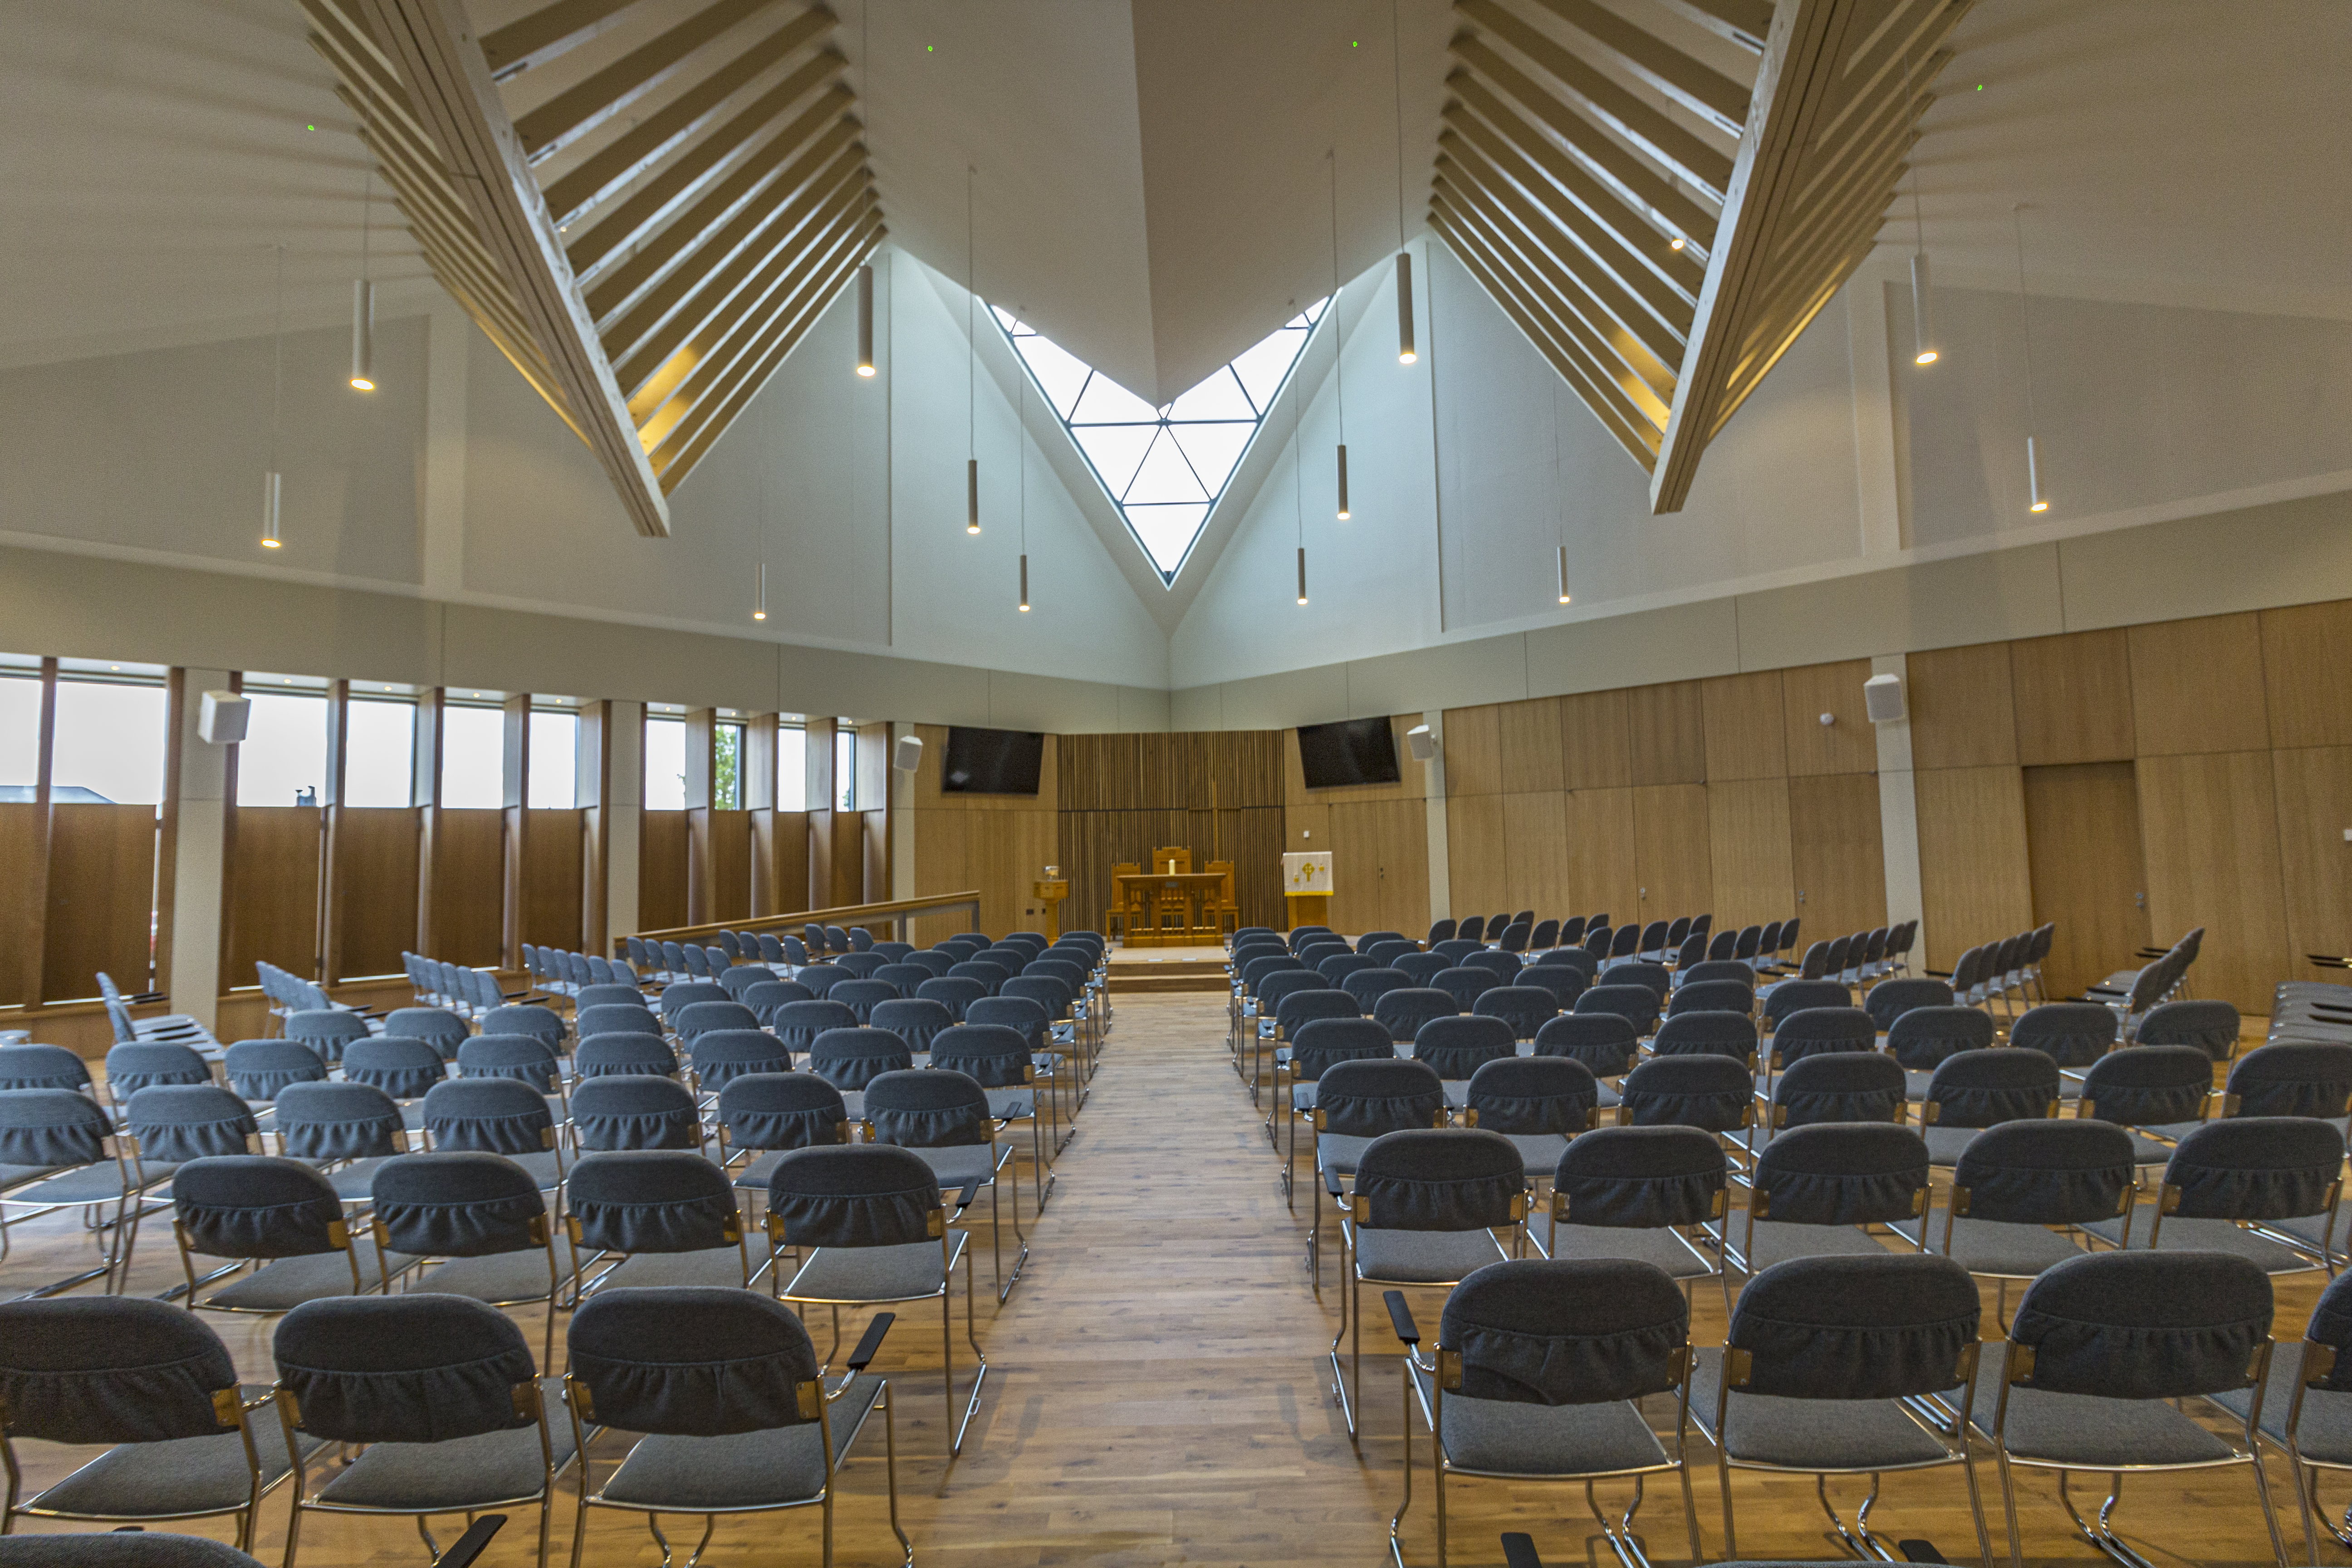 The interior of the new Monifieth Parish Church.